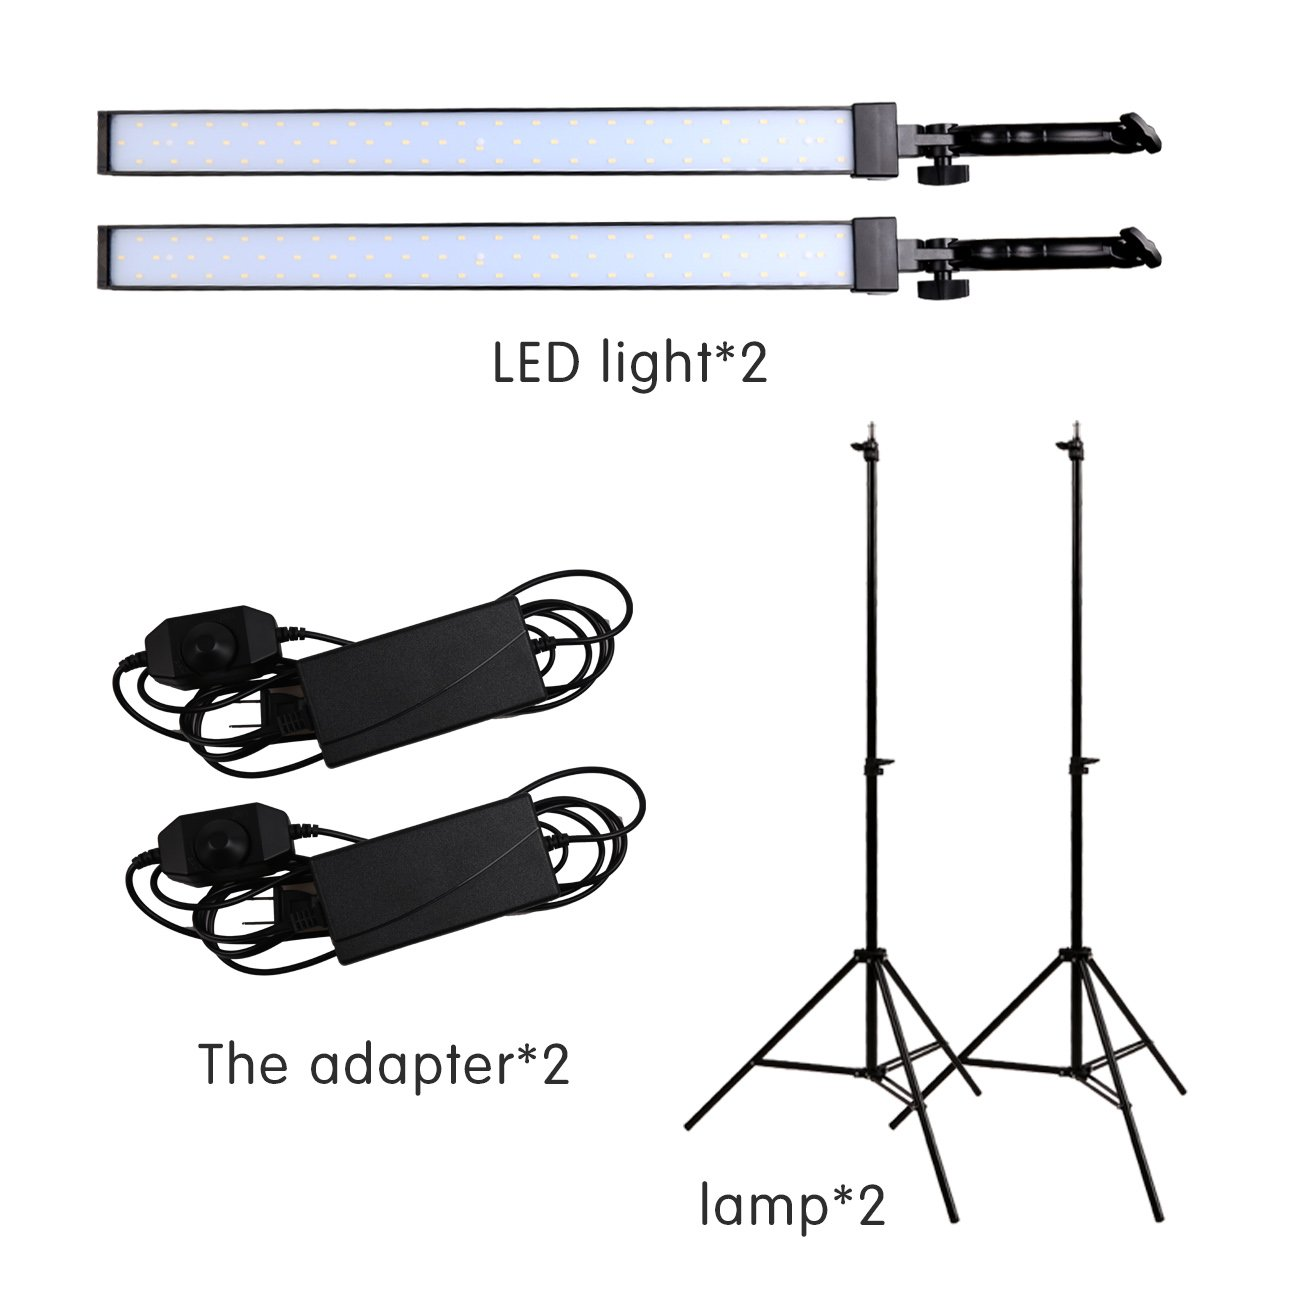 GSKAIWEN Photography Studio LED Lighting Kit Adjustable Light with Light Stand Tripod Photographic Video Capture Portraits by GSKAIWEN